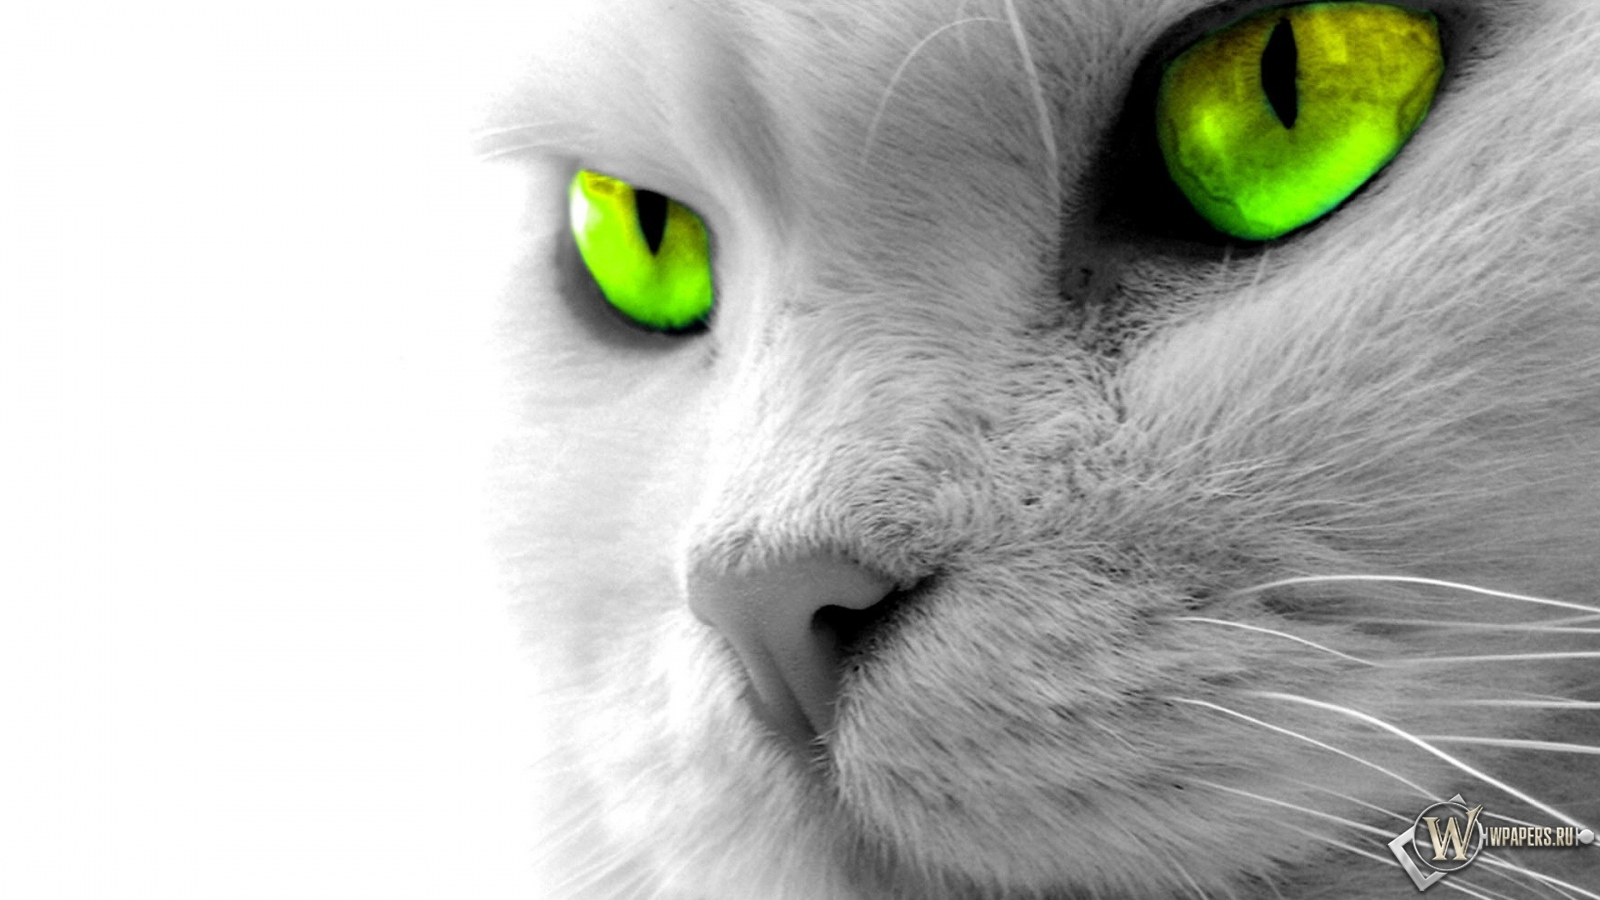 http://wpapers.ru/wallpapers/animals/Cats/8593/1600x900_%D0%9A%D0%BE%D1%88%D0%BA%D0%B8%D0%BD%D1%8B-%D0%B7%D0%B5%D0%BB%D0%B5%D0%BD%D1%8B%D0%B5-%D0%B3%D0%BB%D0%B0%D0%B7%D0%B0.jpg